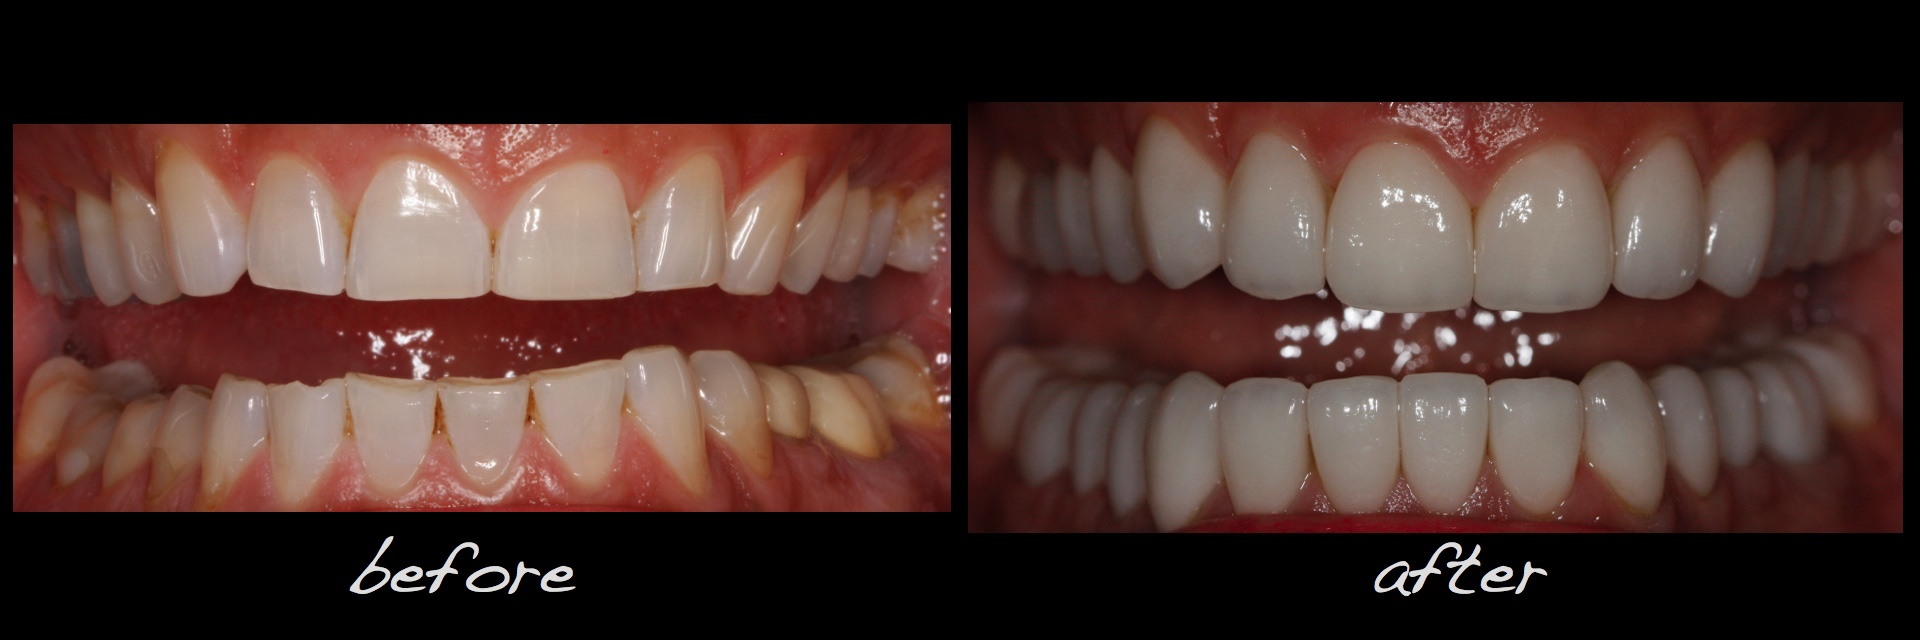 Full Mouth Dental Implants Reconstruction Conservative Alex Sasia.023